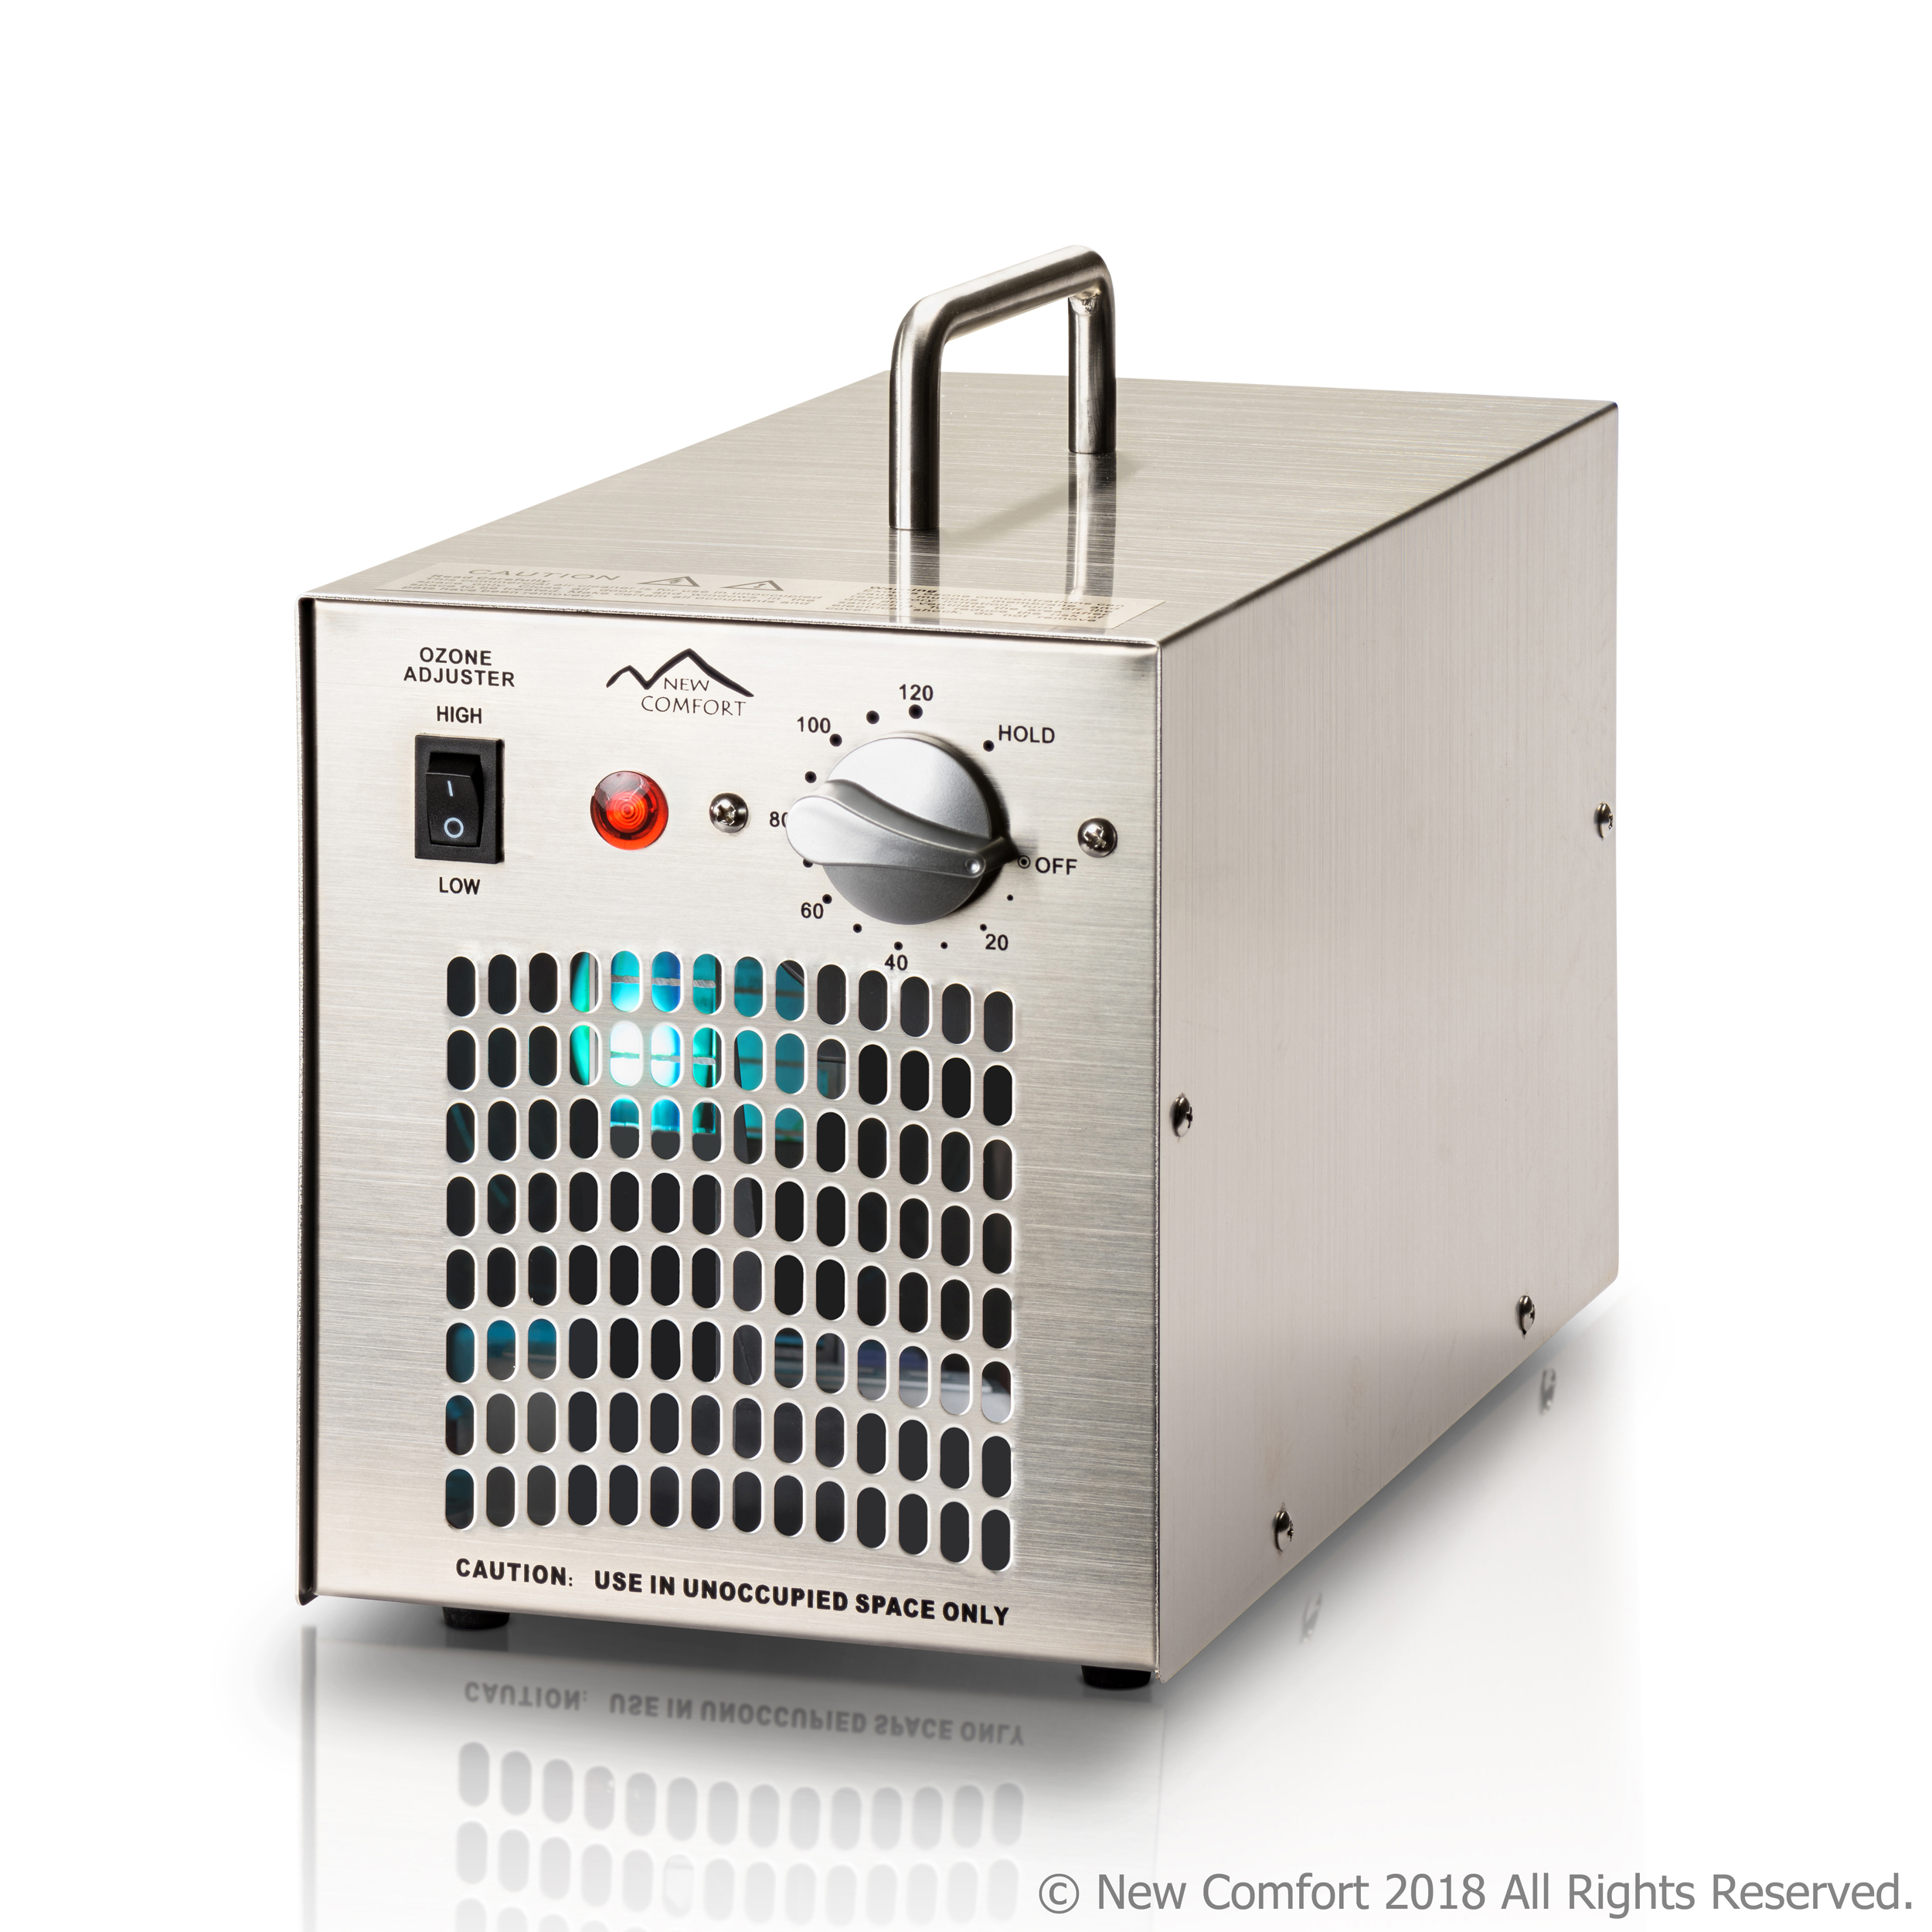 New Comfort Stainless Steel Commercial Ozone Generator UV Air Purifier 7000 Mg Industrial Stregnth